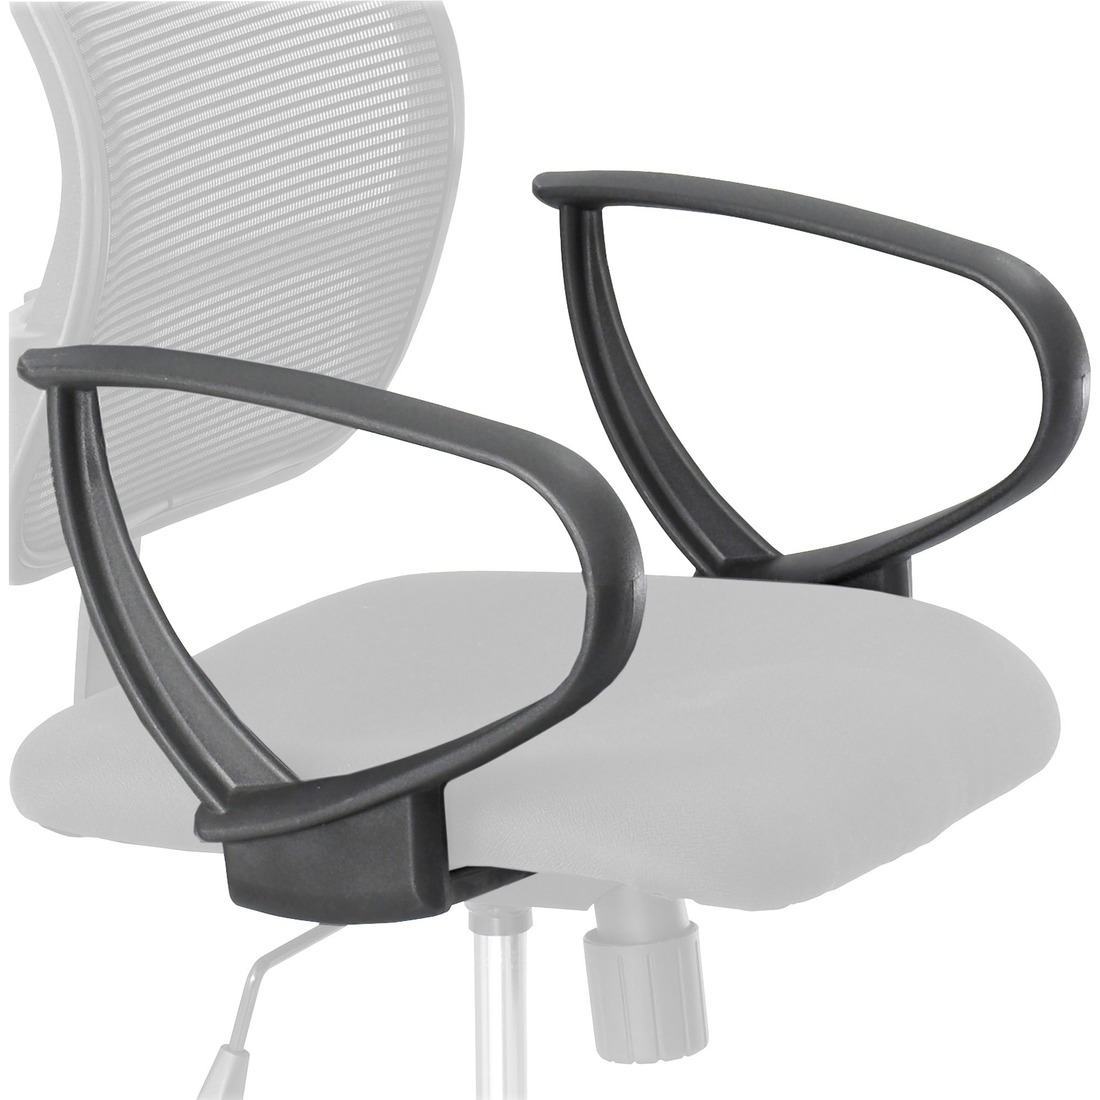 Safco Vue Extended Height Chair Loop Arms Kit